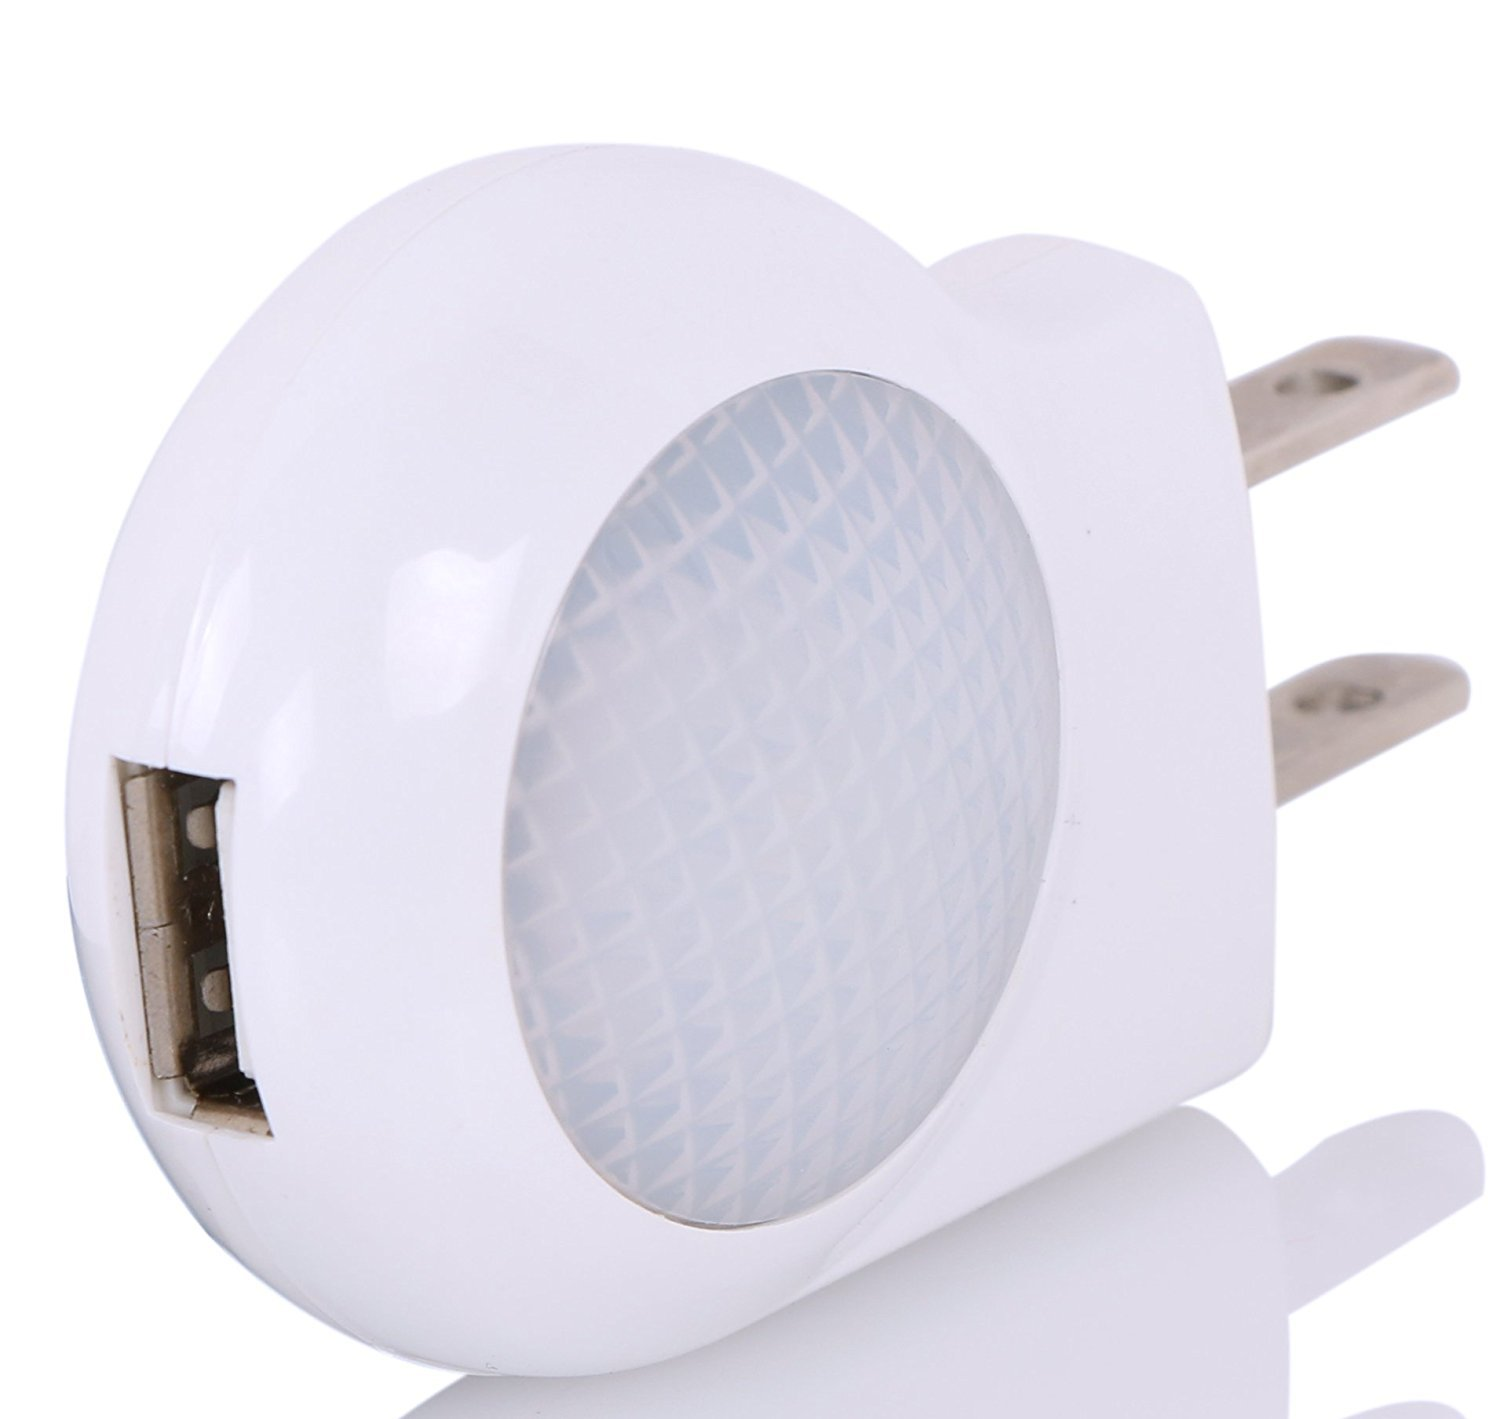 Portable Plug-in 0.7W Travel LED Night Light with USB Wall Charger - 2 Pack of White